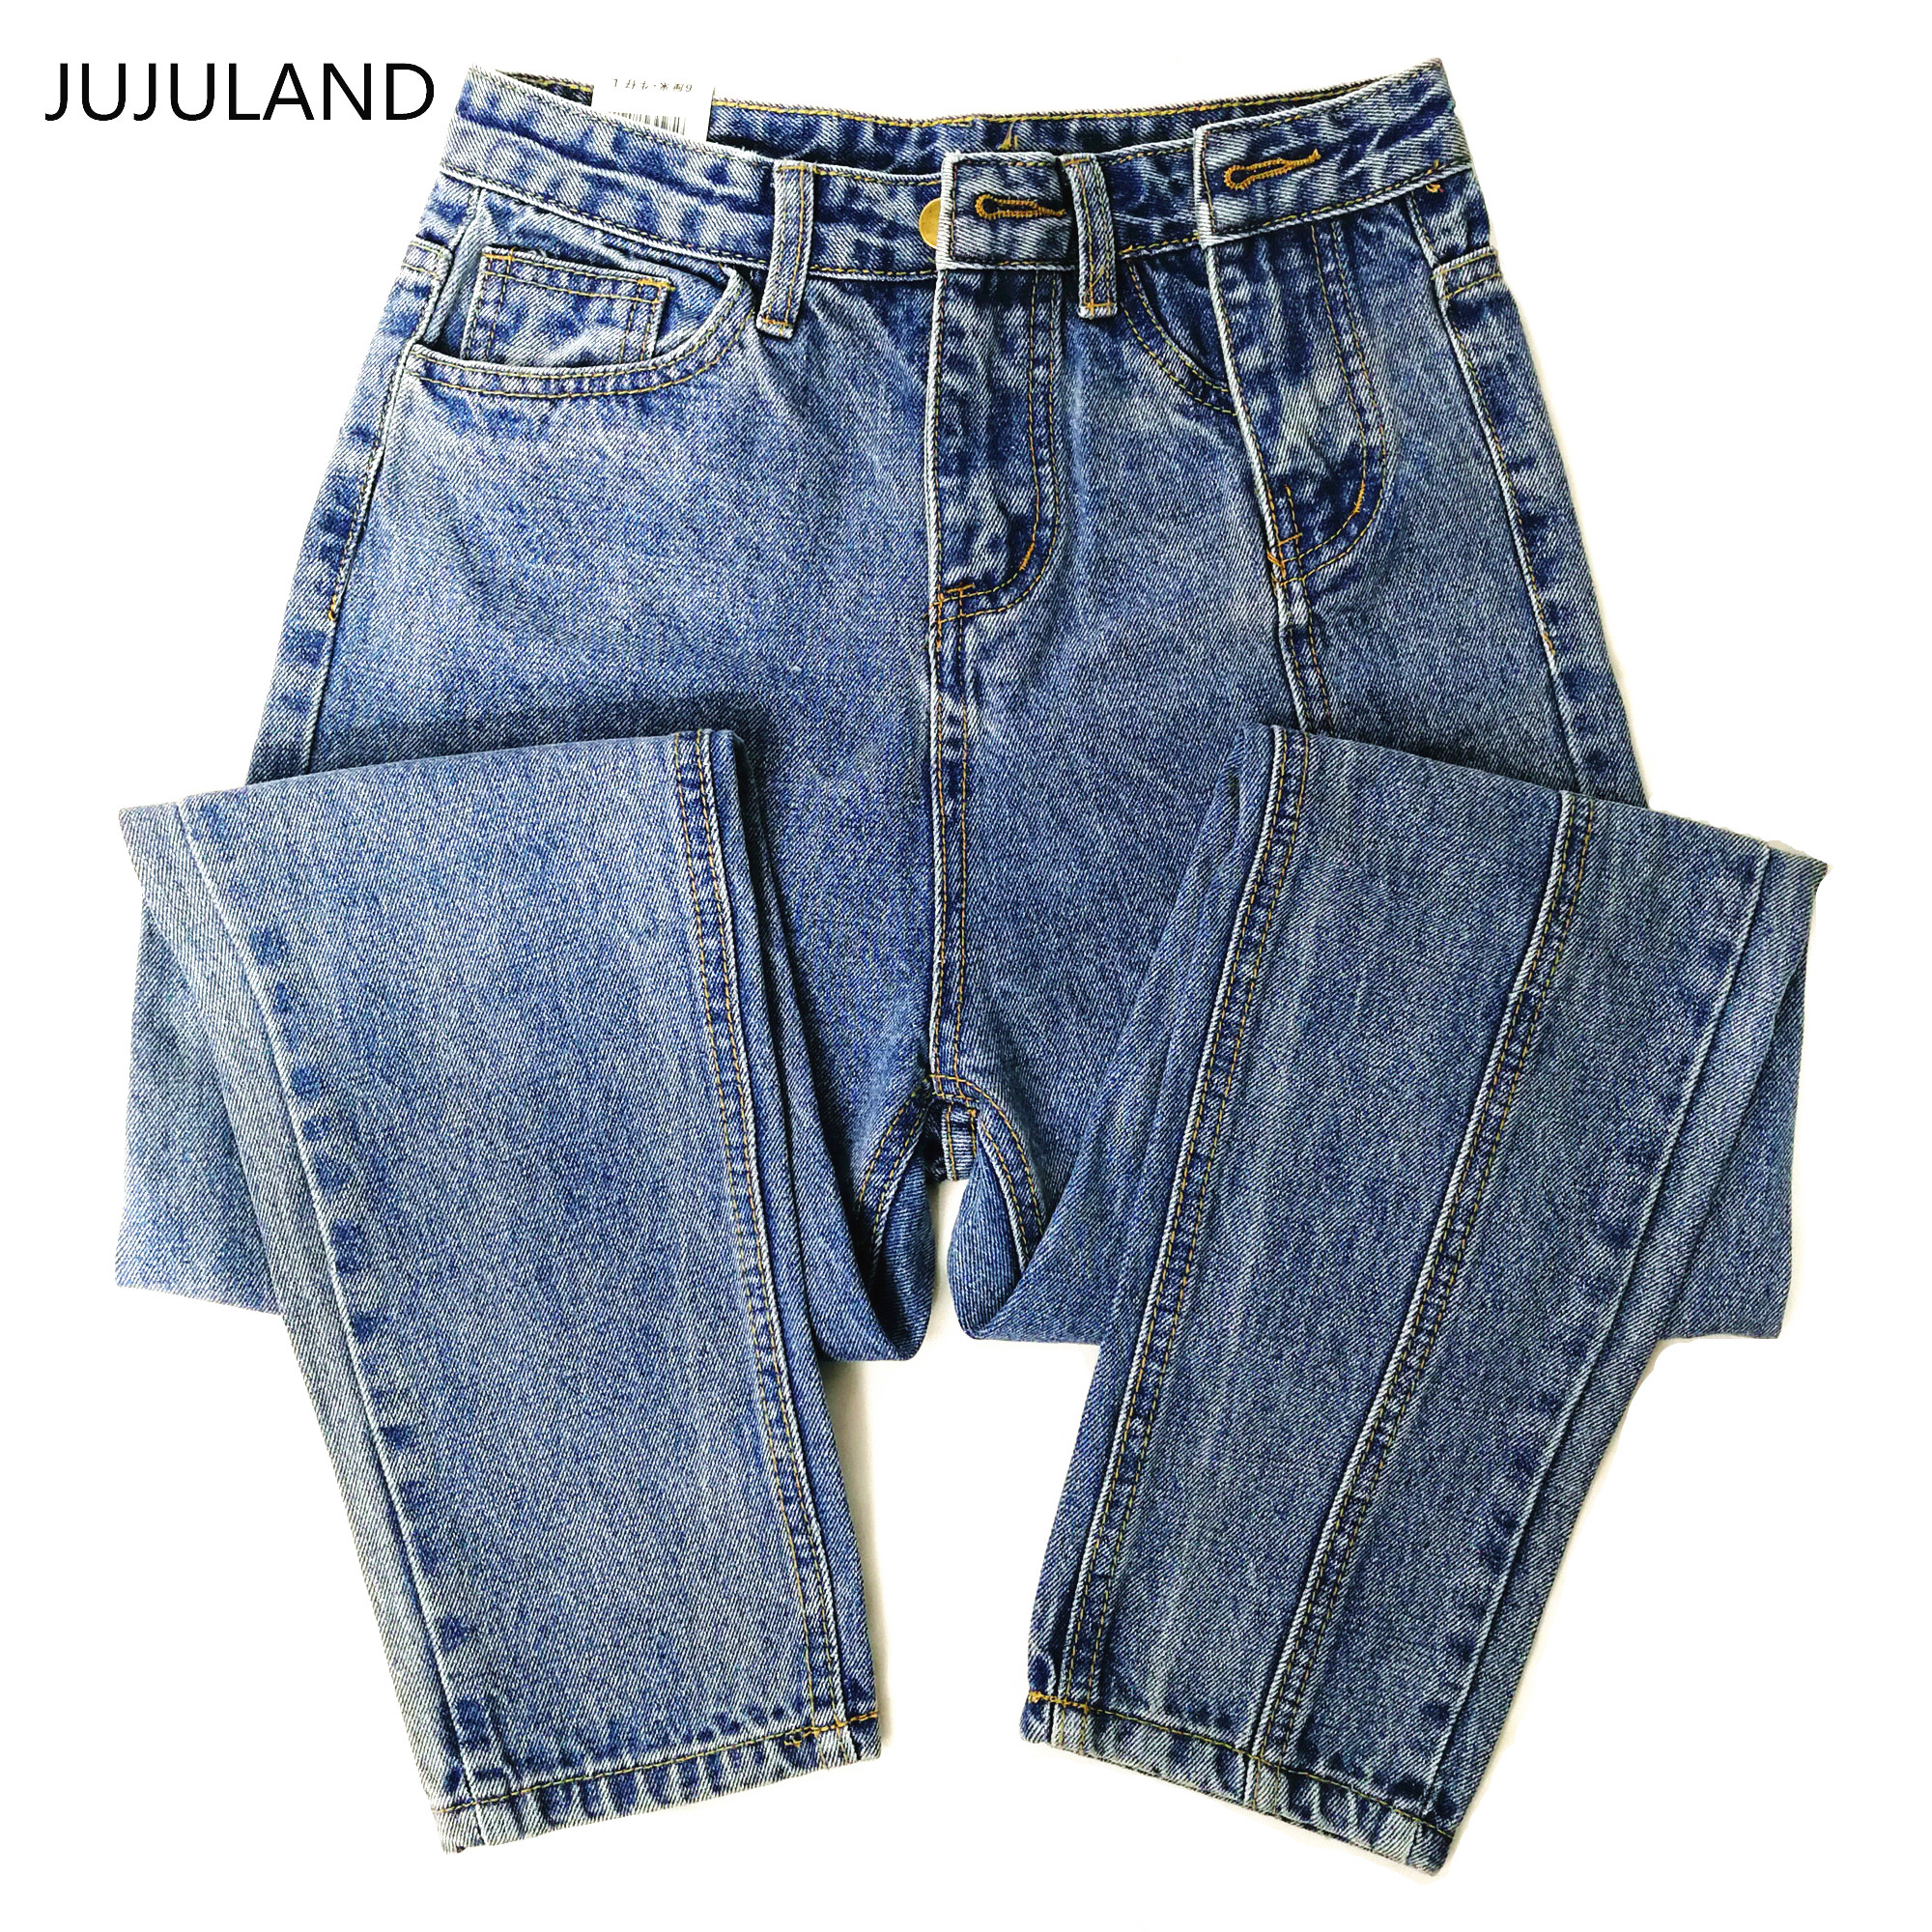 JUJULAND Jeans Ladies High Waist Female Boyfriend Jeans With A Tight Waist Denim Ripped Jean Woman Plus Size